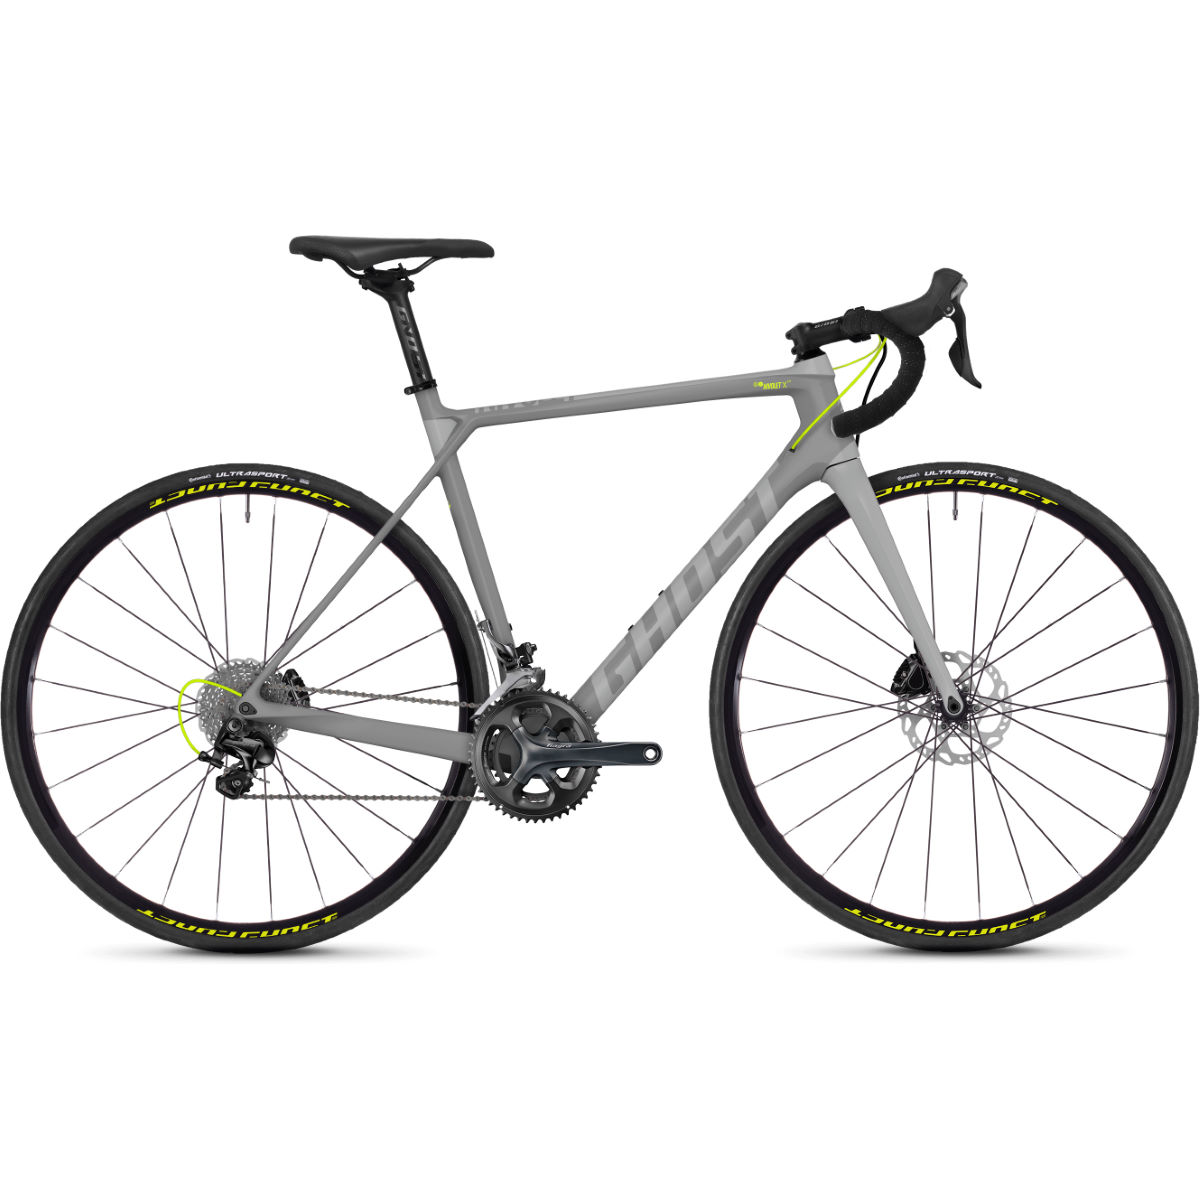 Ghost Nivolet X3.8 Disc (2018) Road Bike - Bicicletas de carretera